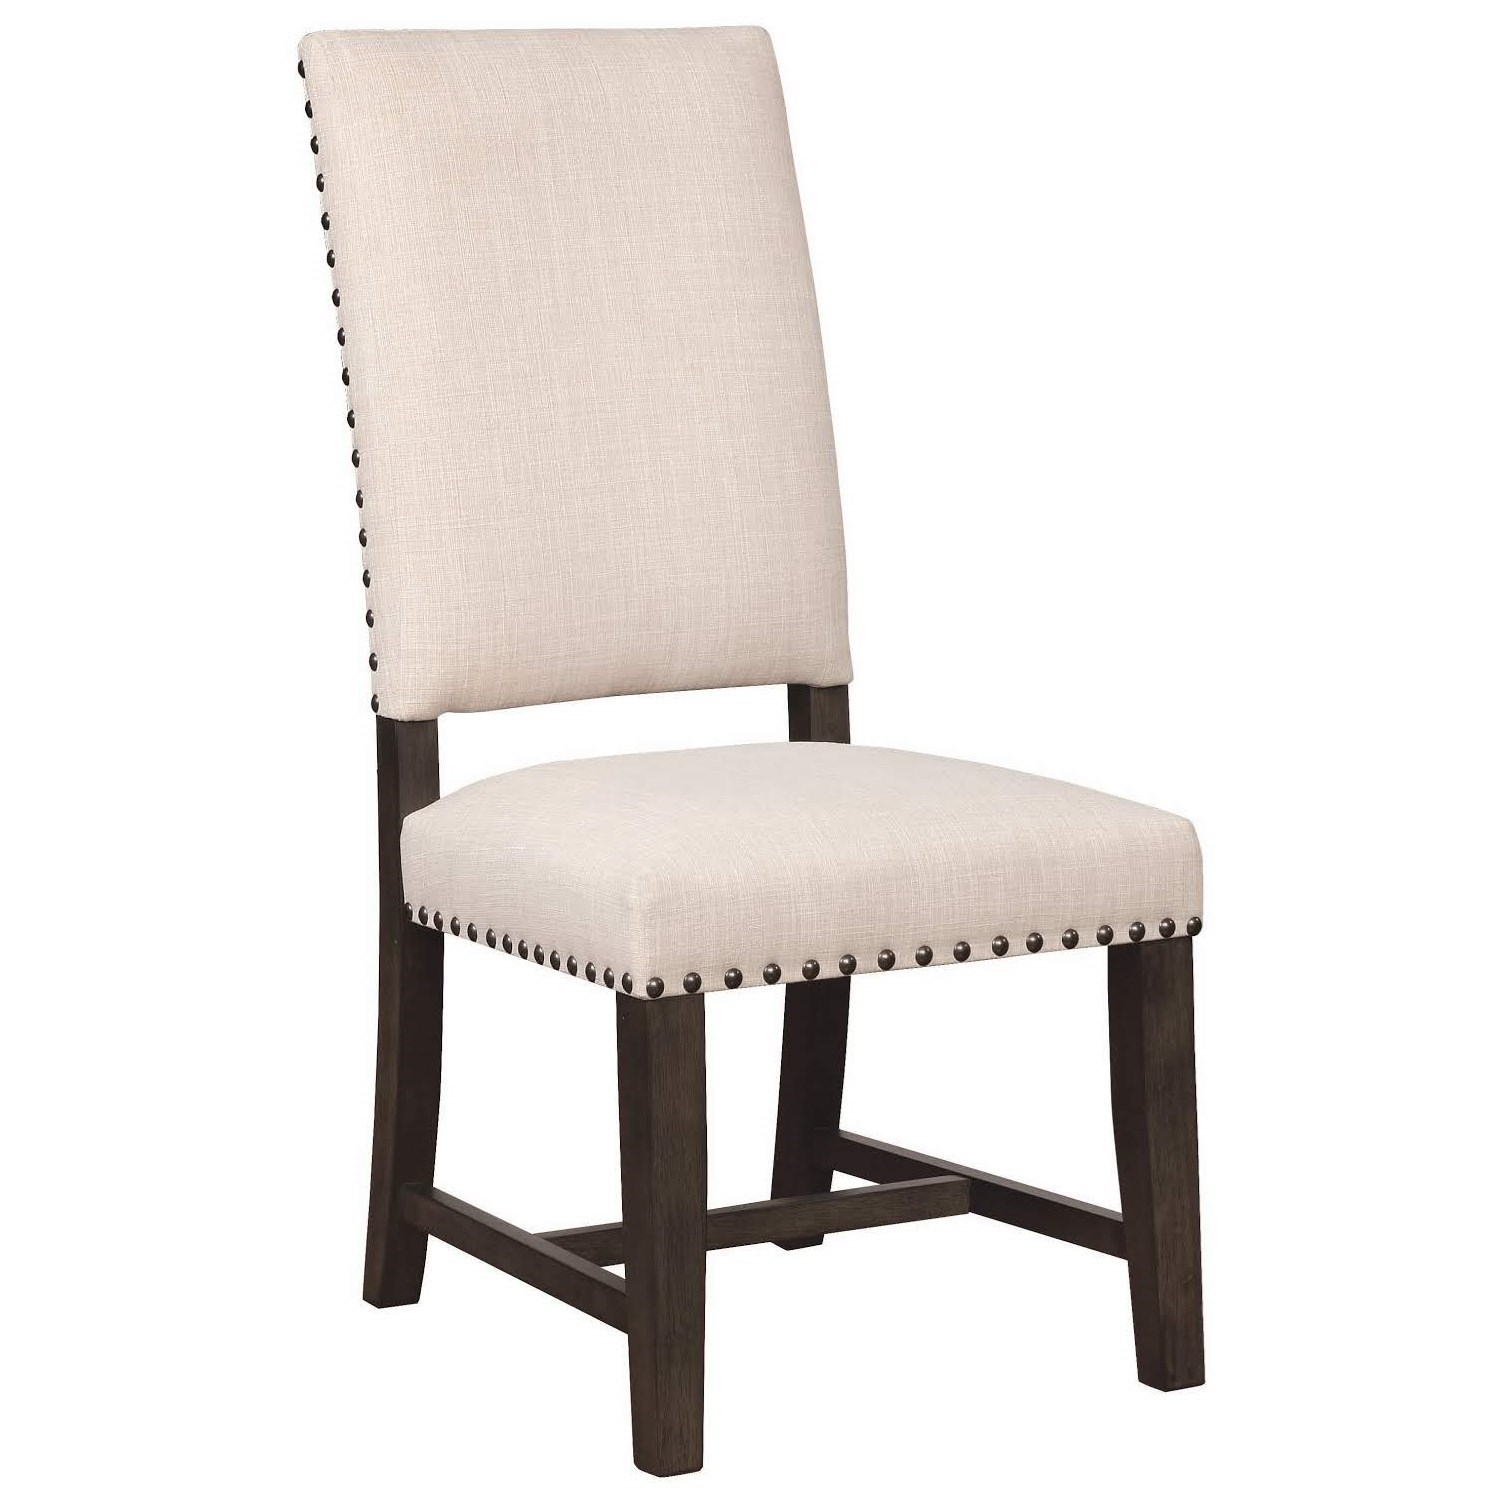 parson chairs red swivel chair scott living 1028 upholstered with nailhead trim